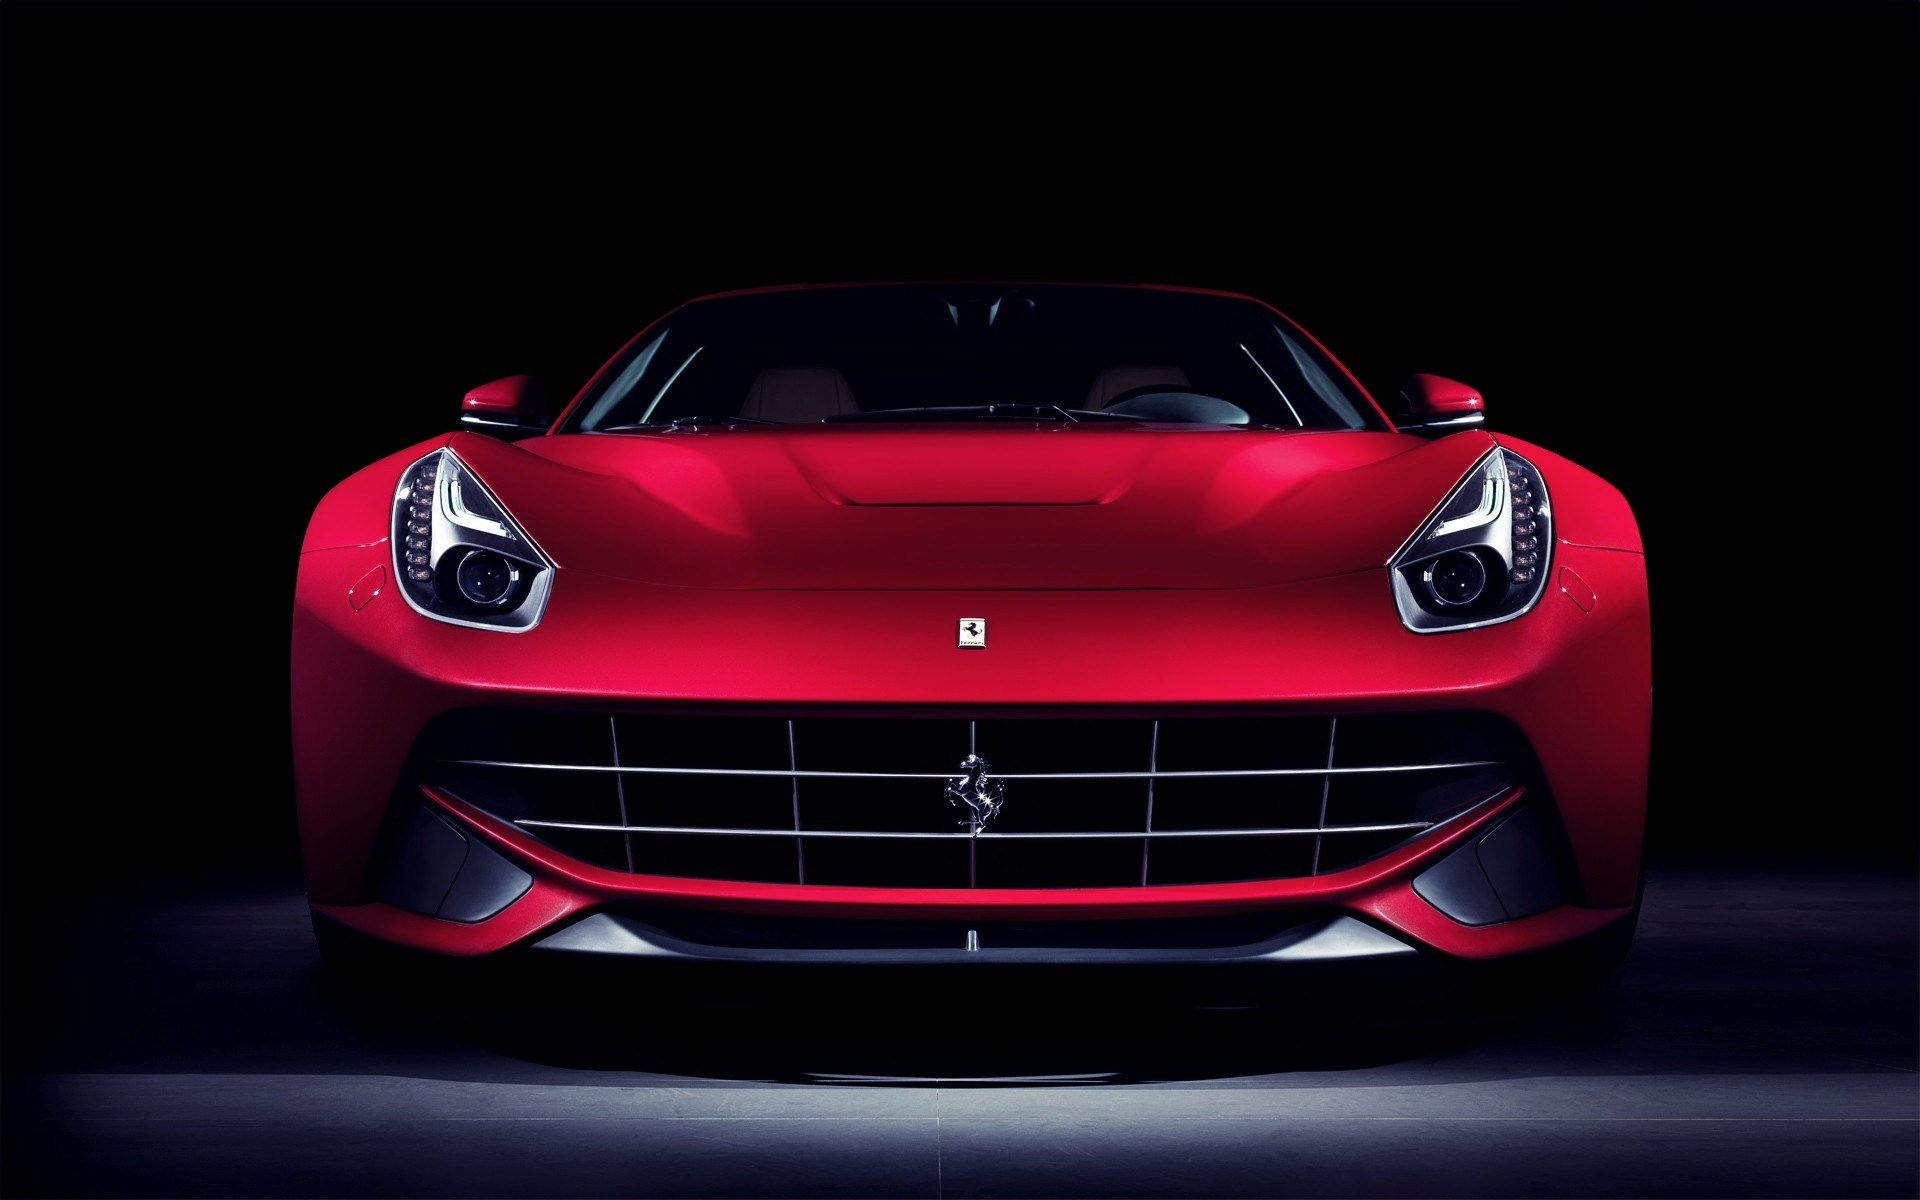 Car Ferrari F12 Berlinetta Front HD Wallpaper